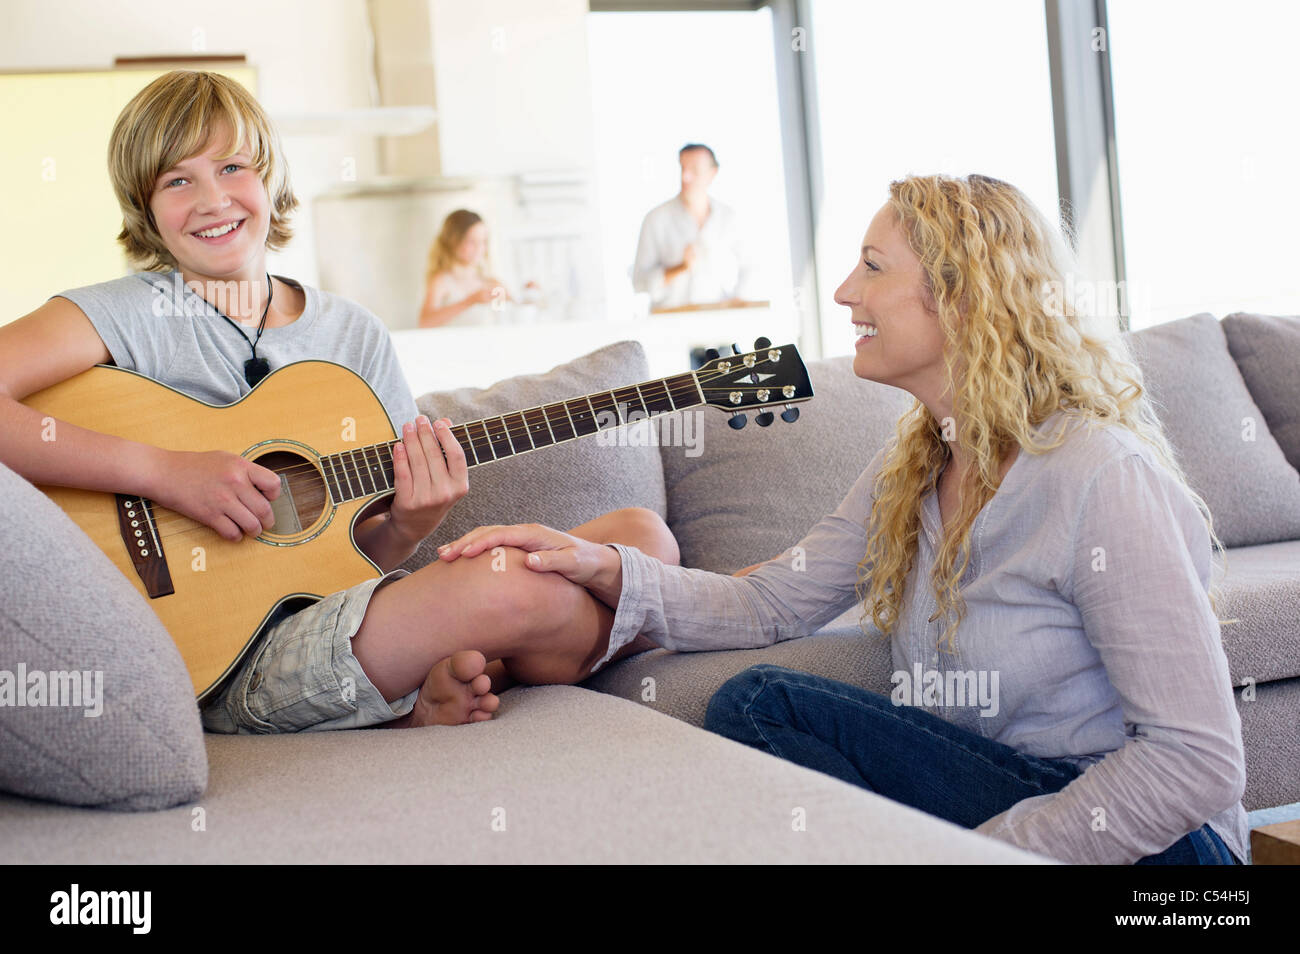 Teenage boy playing a guitar with his mother sitting near him and smiling Stock Photo